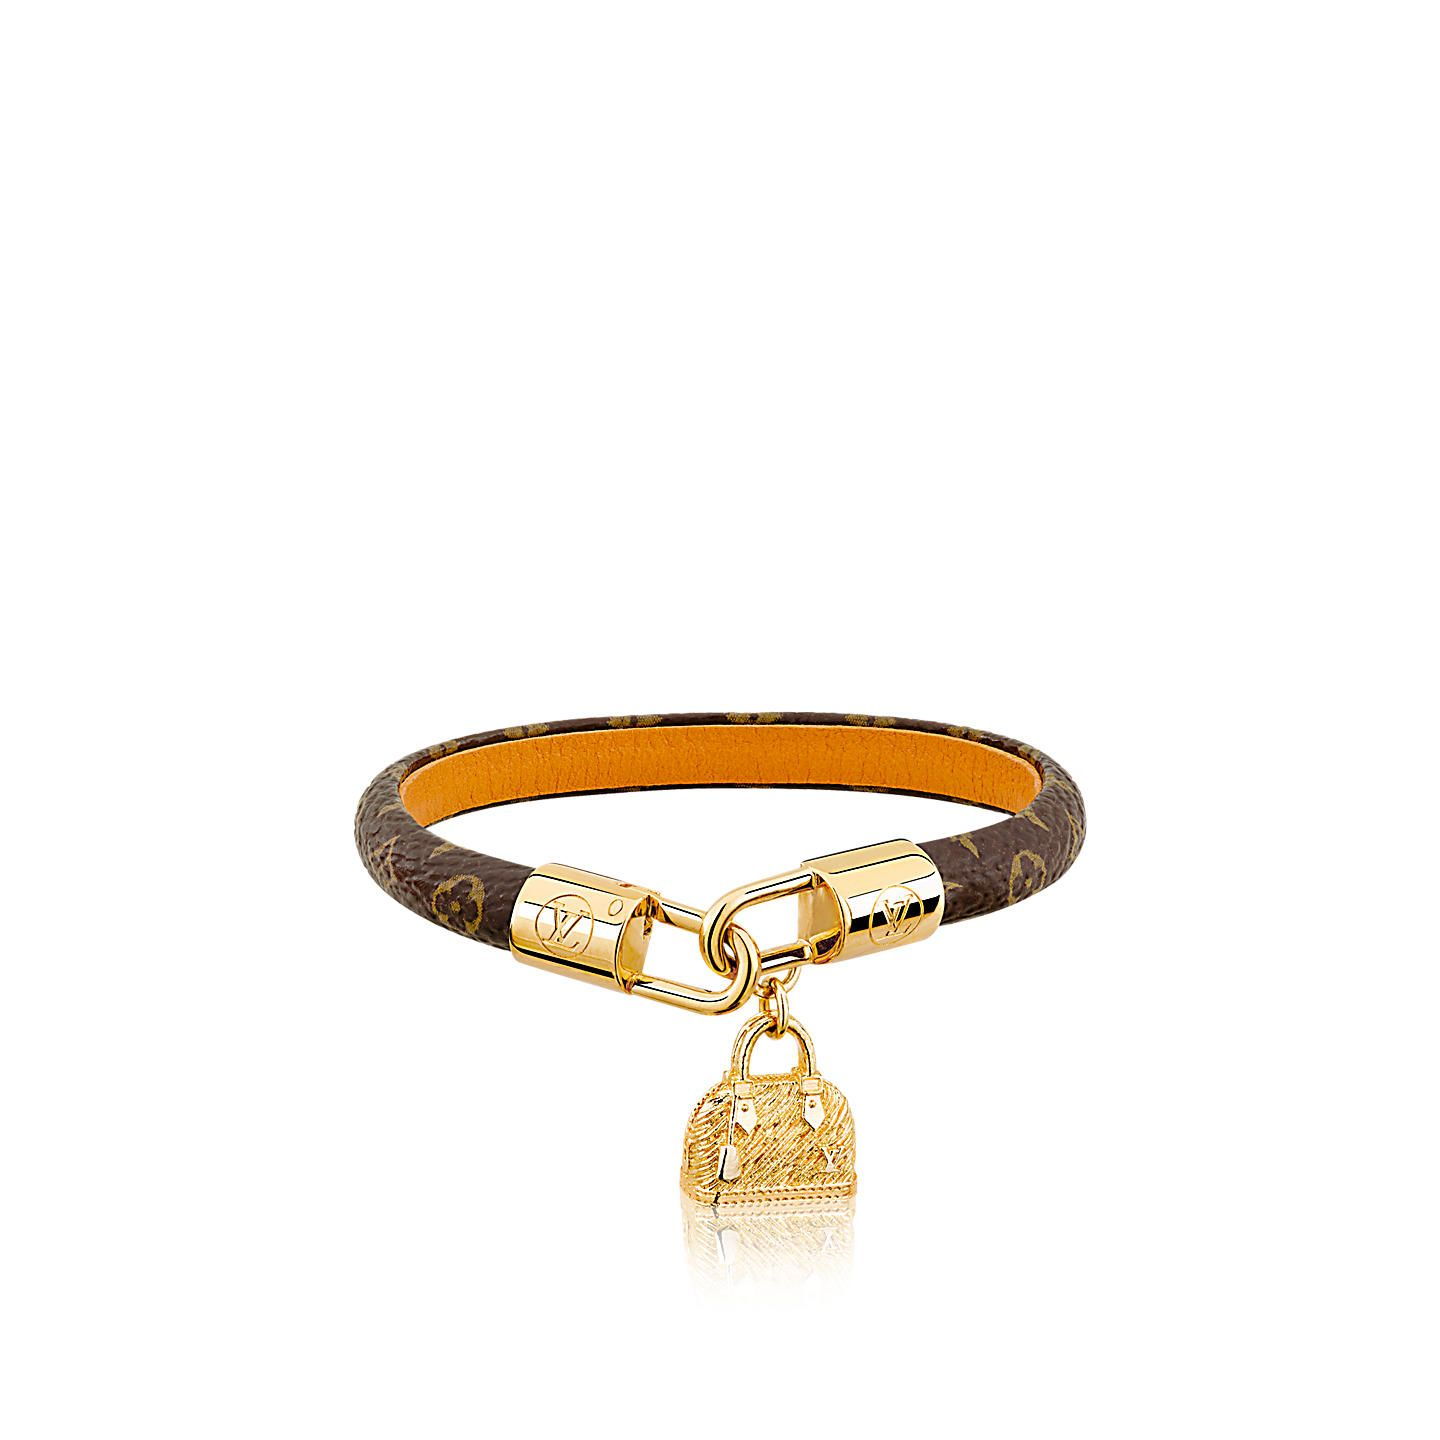 Alma bracelet in womenus accessories leather bracelets collections